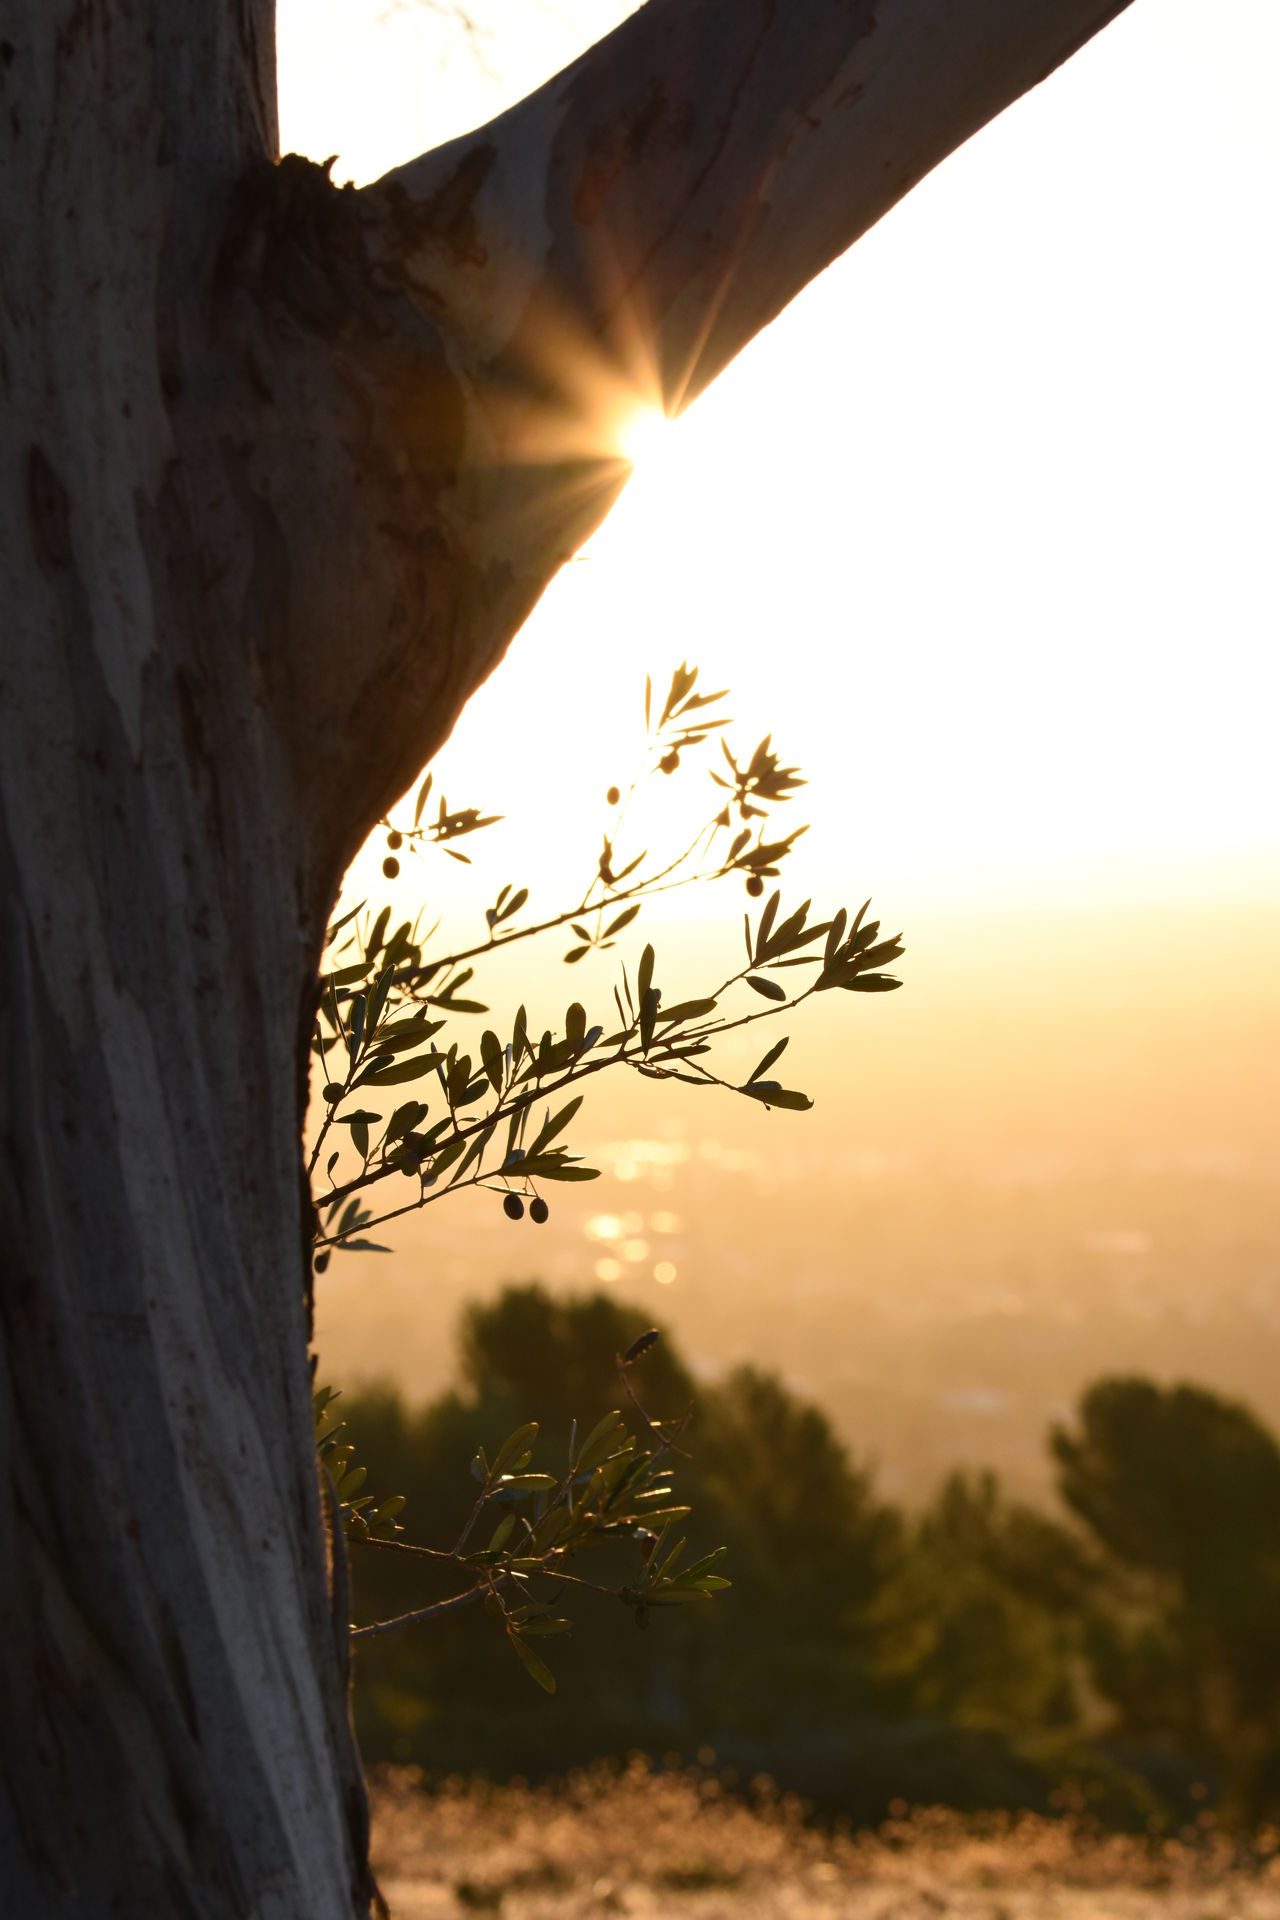 Stunning Sunset Tree Olive Tree View Golden Hour EyeEm Nature Lover No Filter, No Edit, Just Photography Taking Photos Check This Out Sun Glare 43 Golden Moments